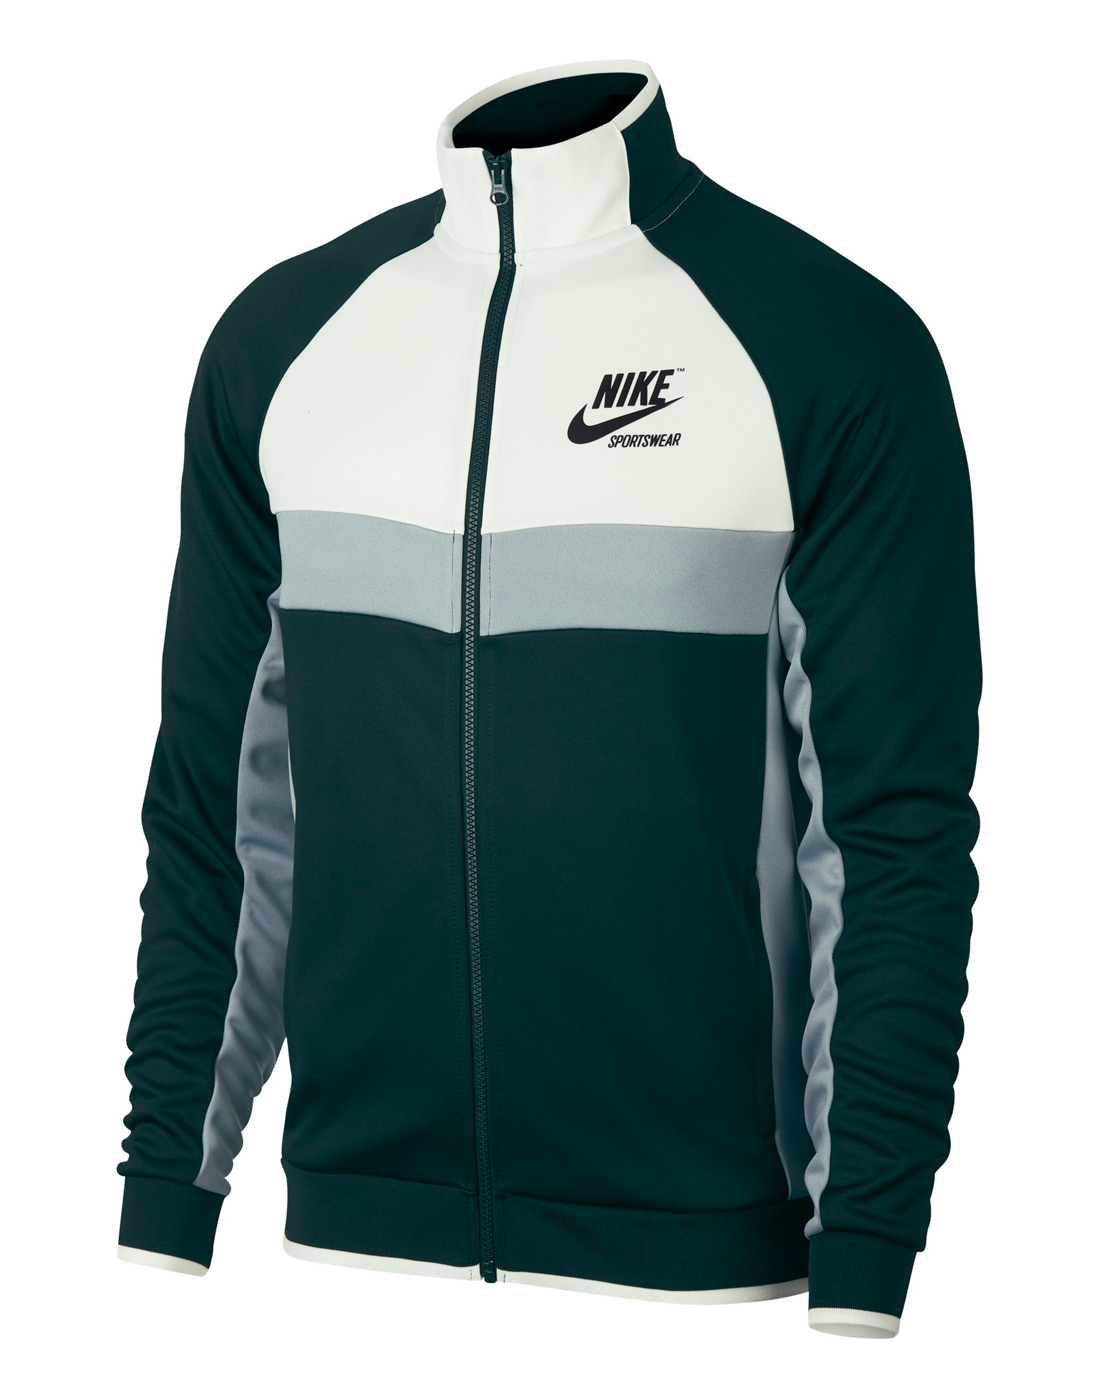 6f9a722b6c17b Nike. Mens Archive Track Top. Mens Archive Track Top ...